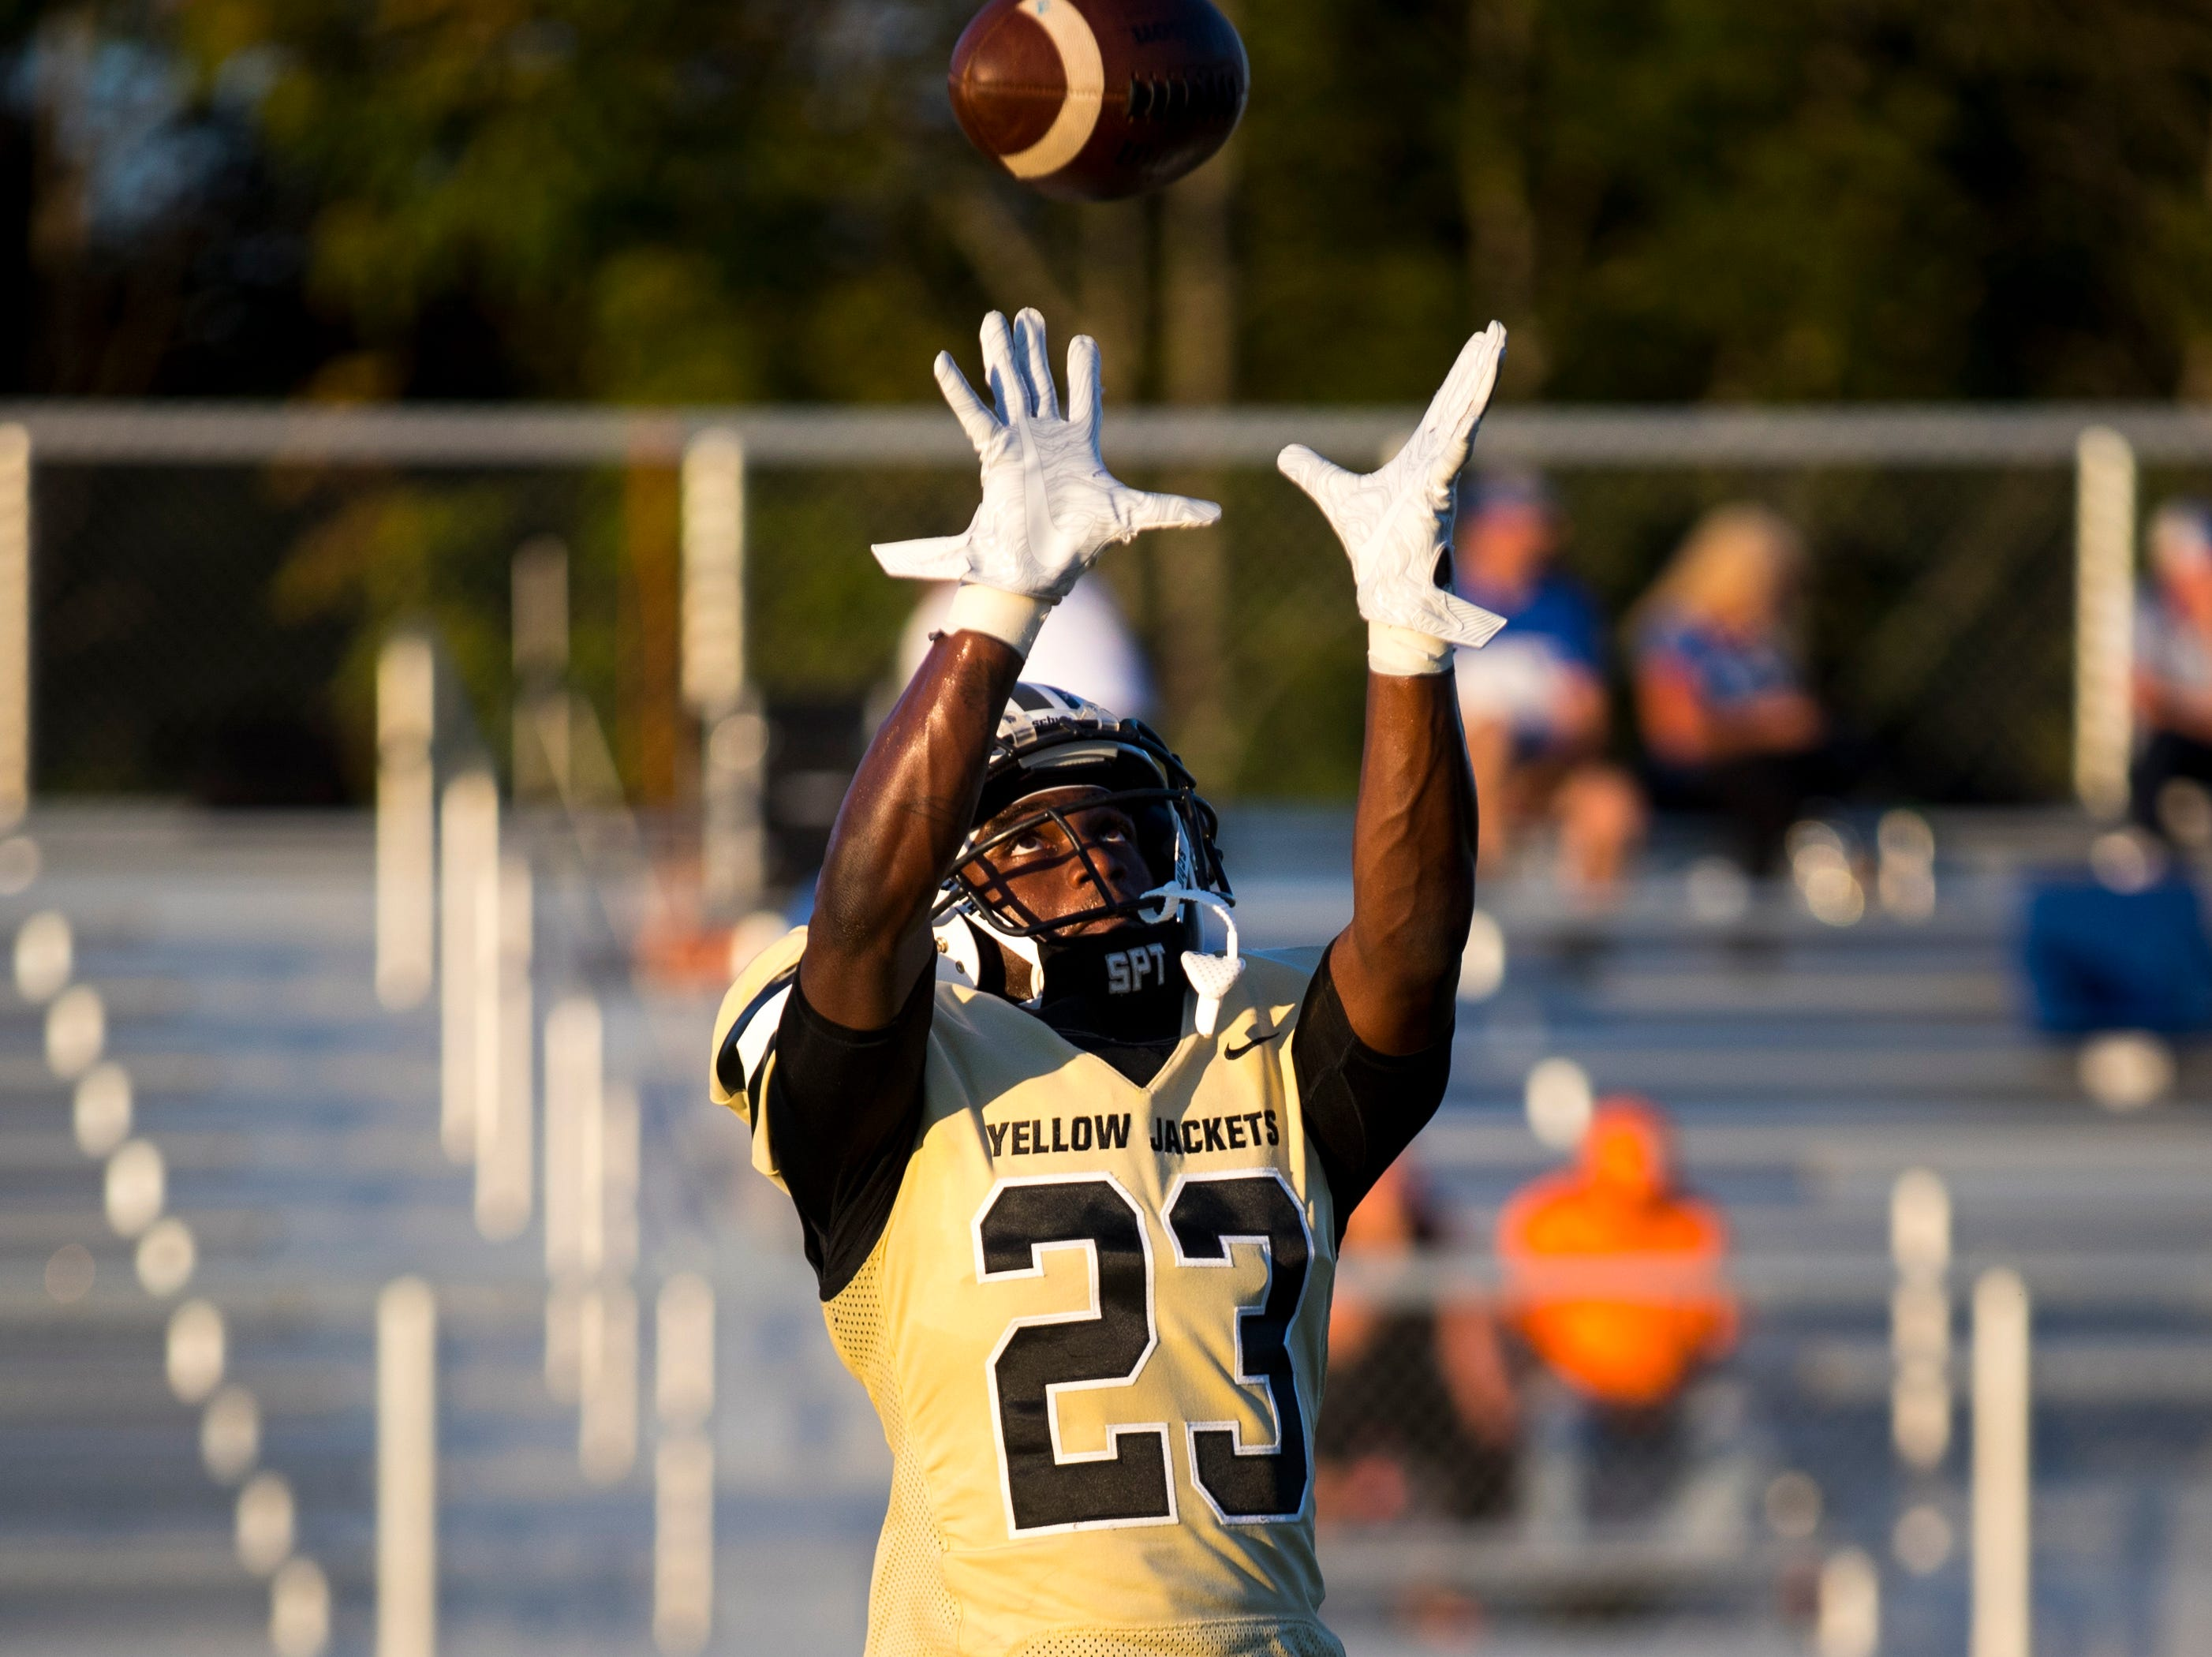 Springfield's Dayron Johnson (23) catches a pass during warmups before Springfield's game against White House at Springfield High School in Springfield on Friday, Sept. 14, 2018.